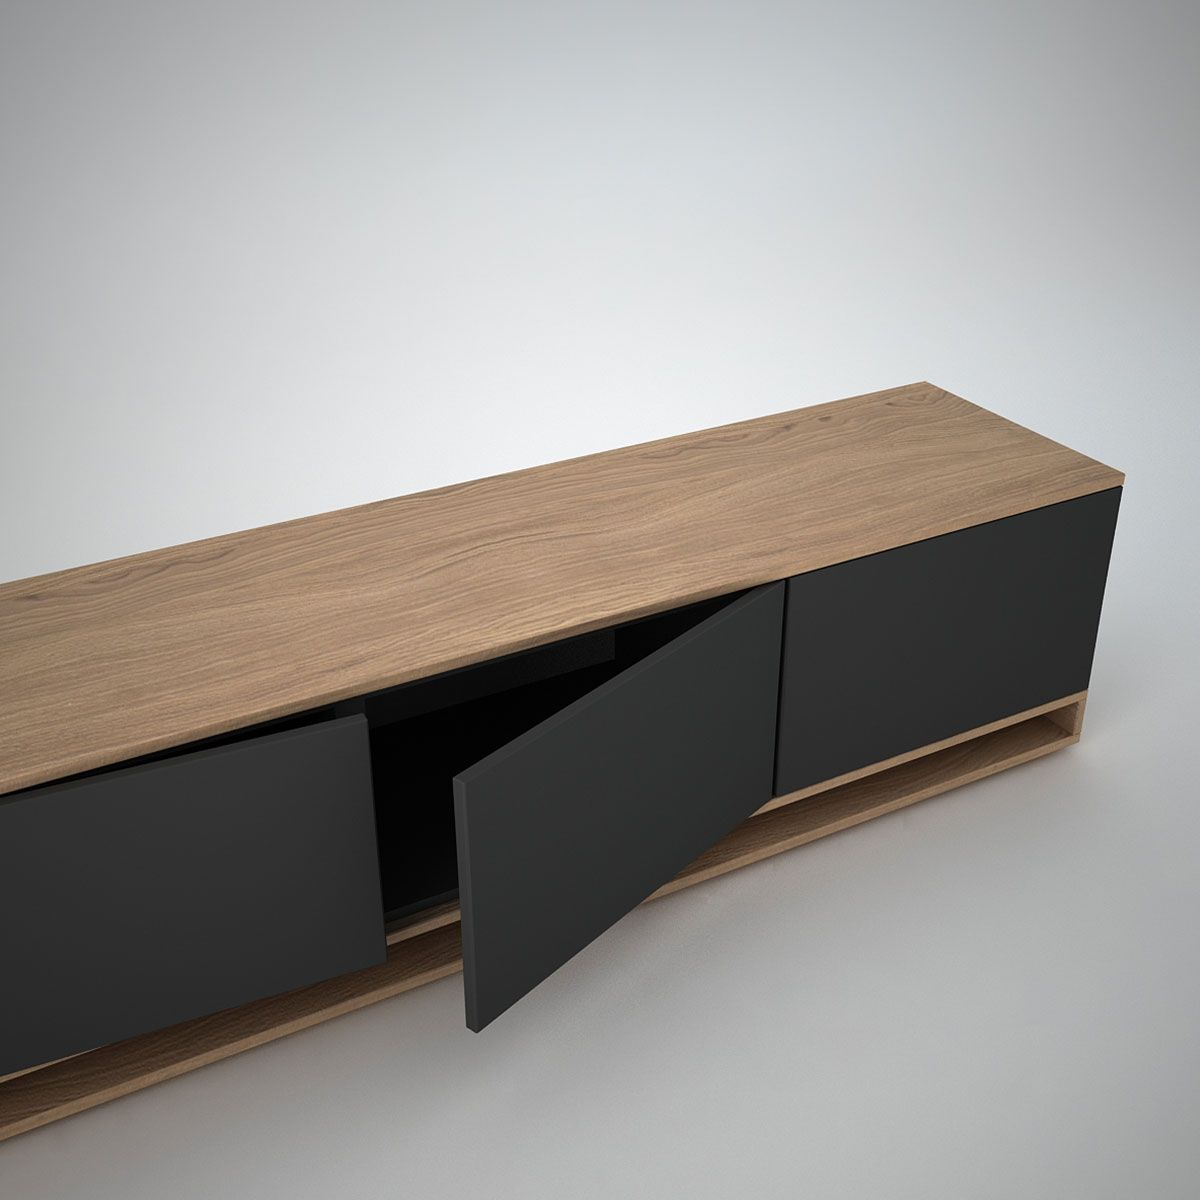 Harlem Low Sideboard 3 Anthracite Join Furniture Projects To